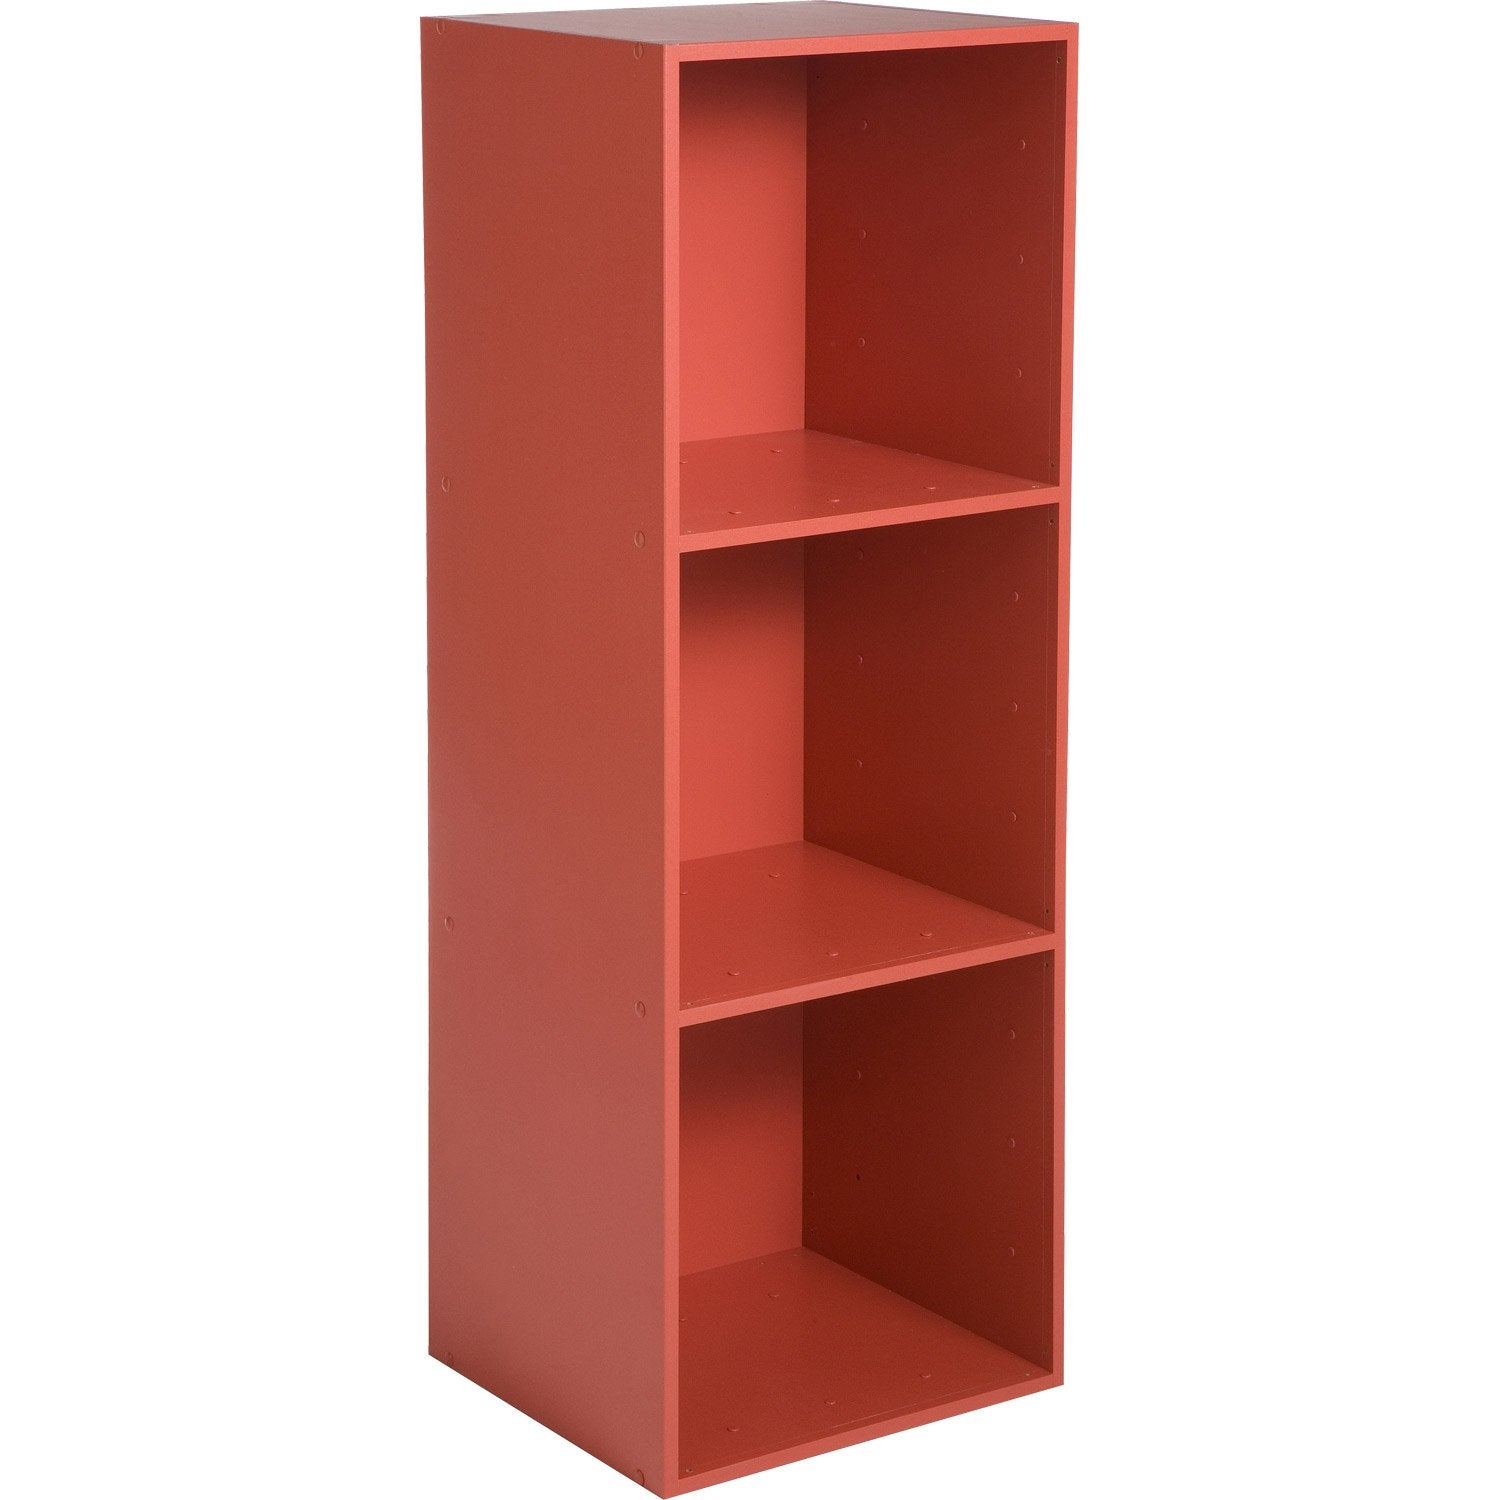 Etag re 3 cases multikaz rouge x x - Etagere modulable leroy merlin ...